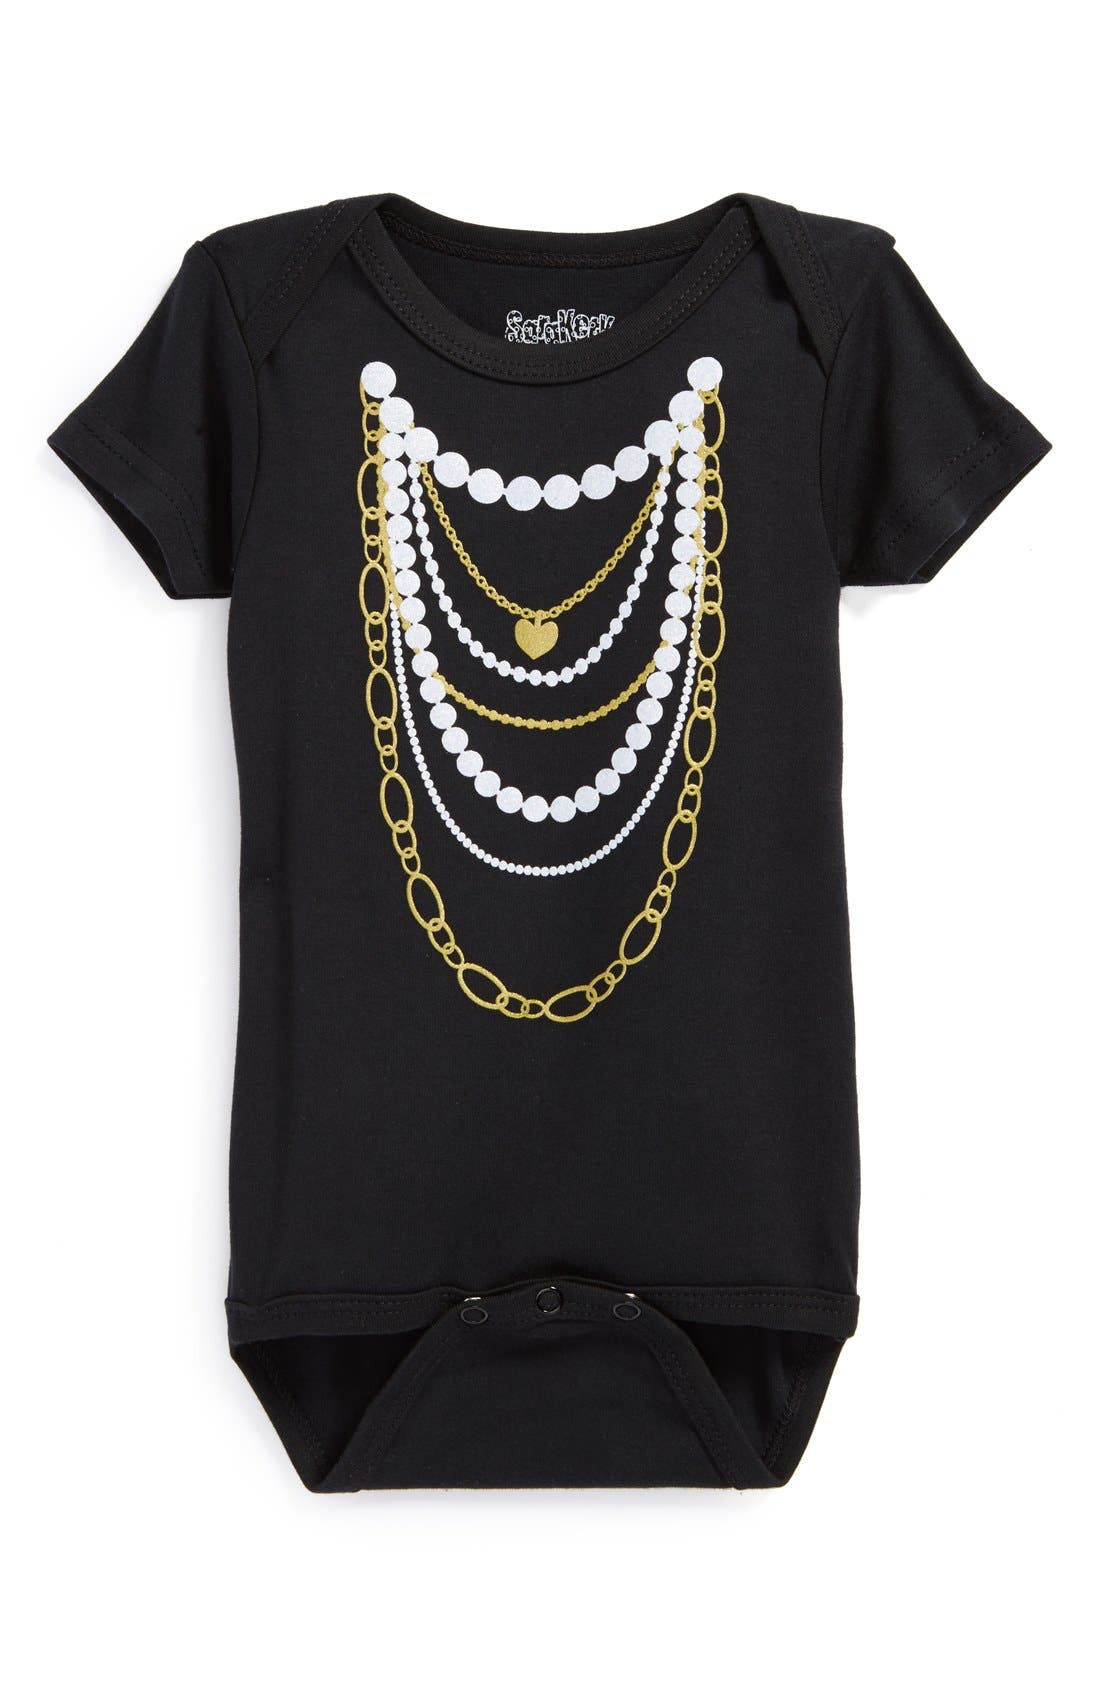 Sara Kety Baby & Kids 'Gold 'n Pearls' Short Sleeve Bodysuit (Baby Girls)